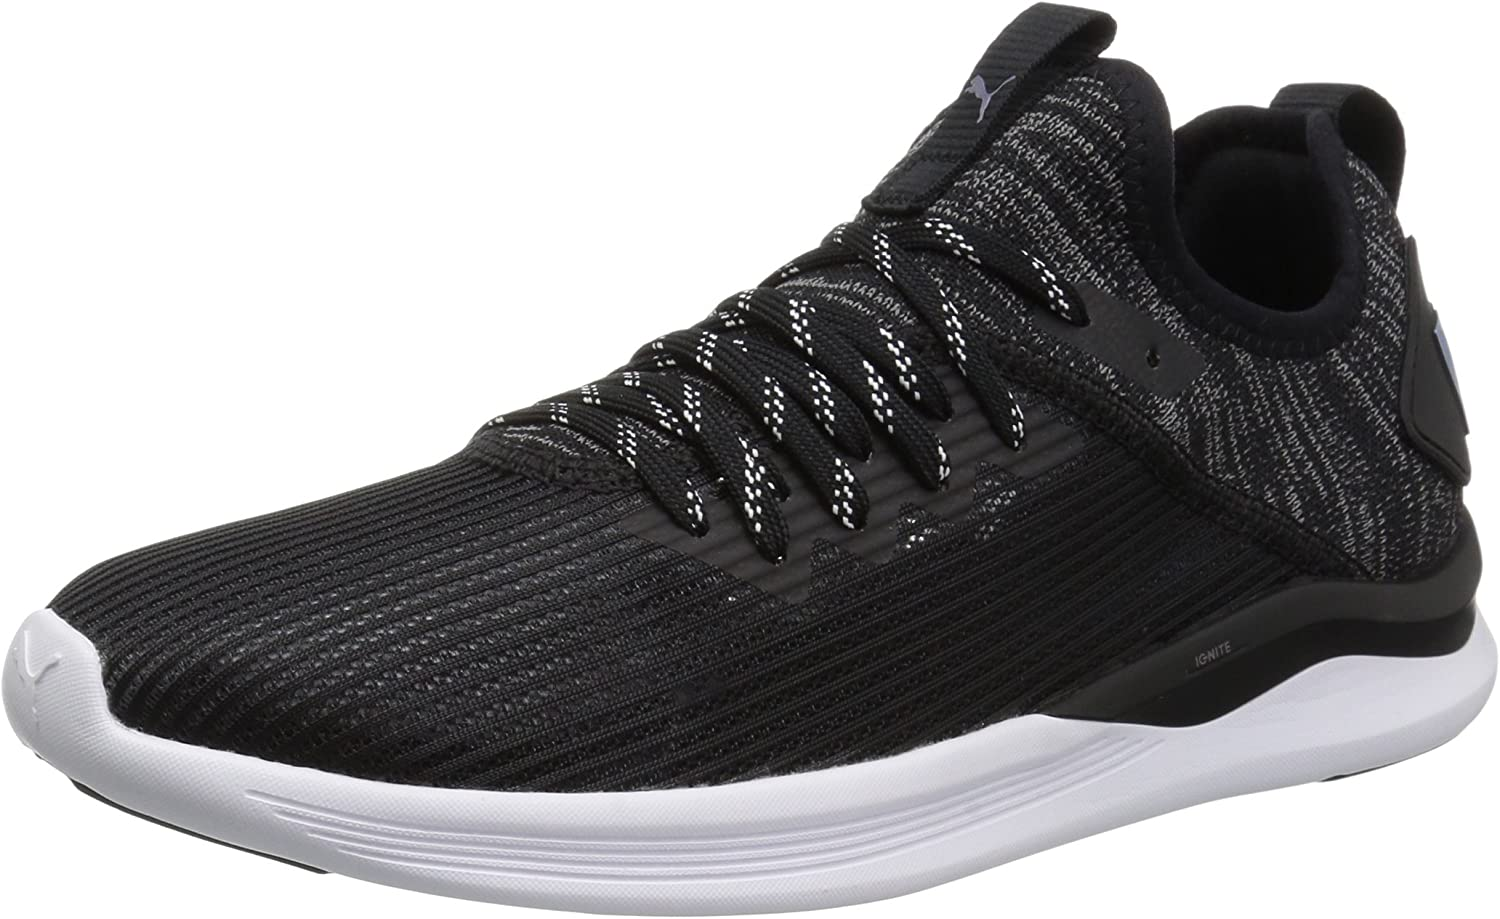 PUMA Women's Ignite Flash Evoknit Stripped Wn Sneaker